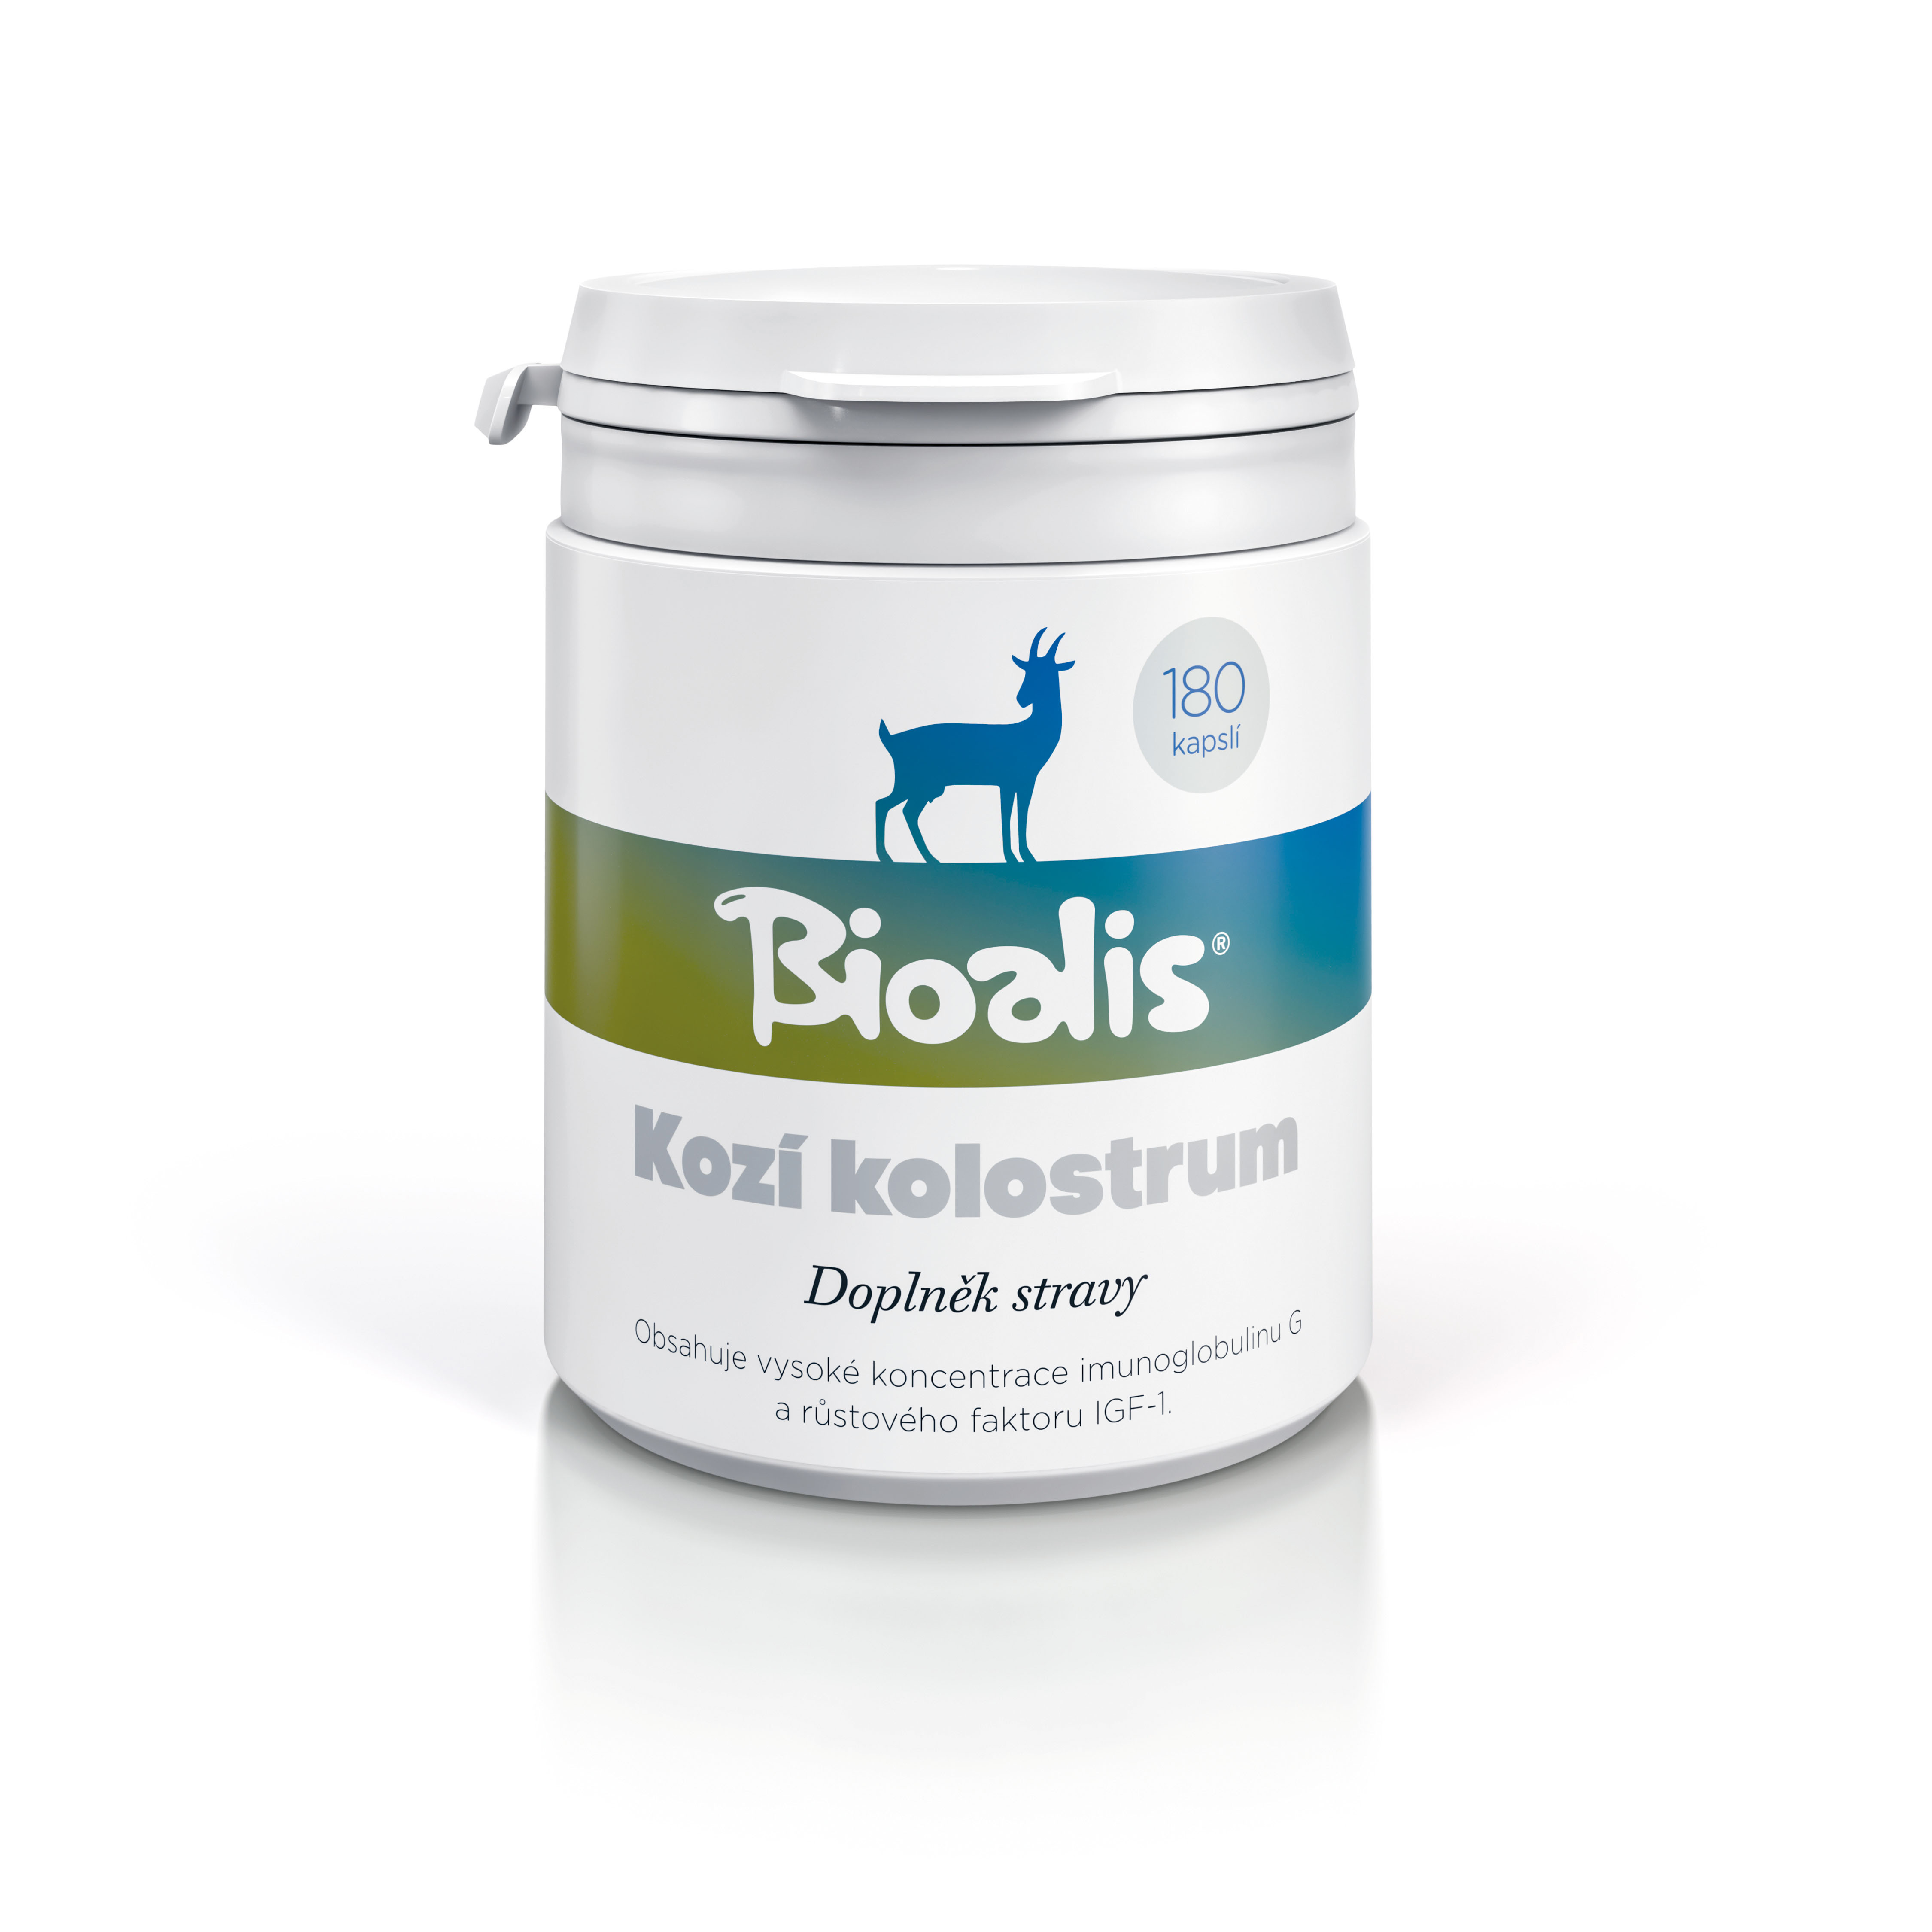 Bioalis Kozí kolostrum | 180 tablet